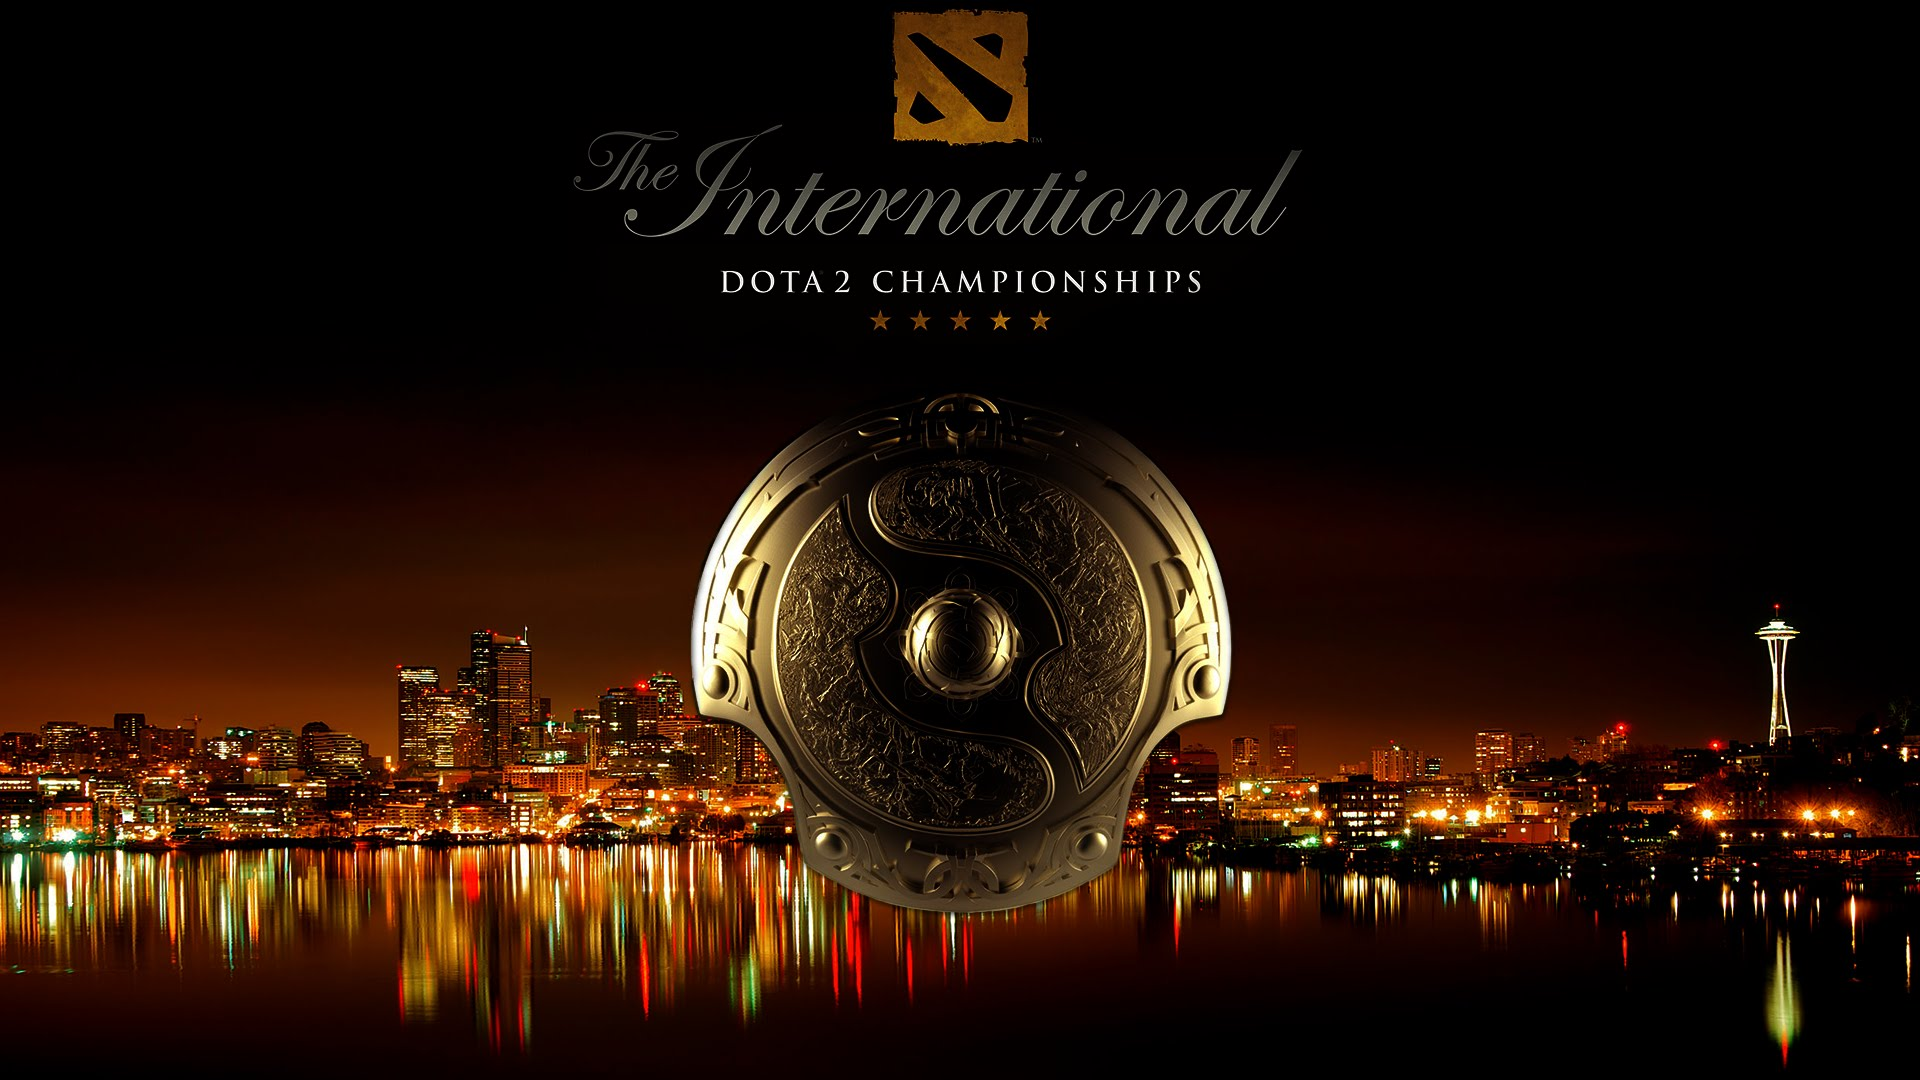 dota 2 international championships, esports, igaming, gambling, casino, casinos, online casino, online gambling, betting on esports, online gaming, gaming championships, gaming tournaments, professional gamers, professional gaming